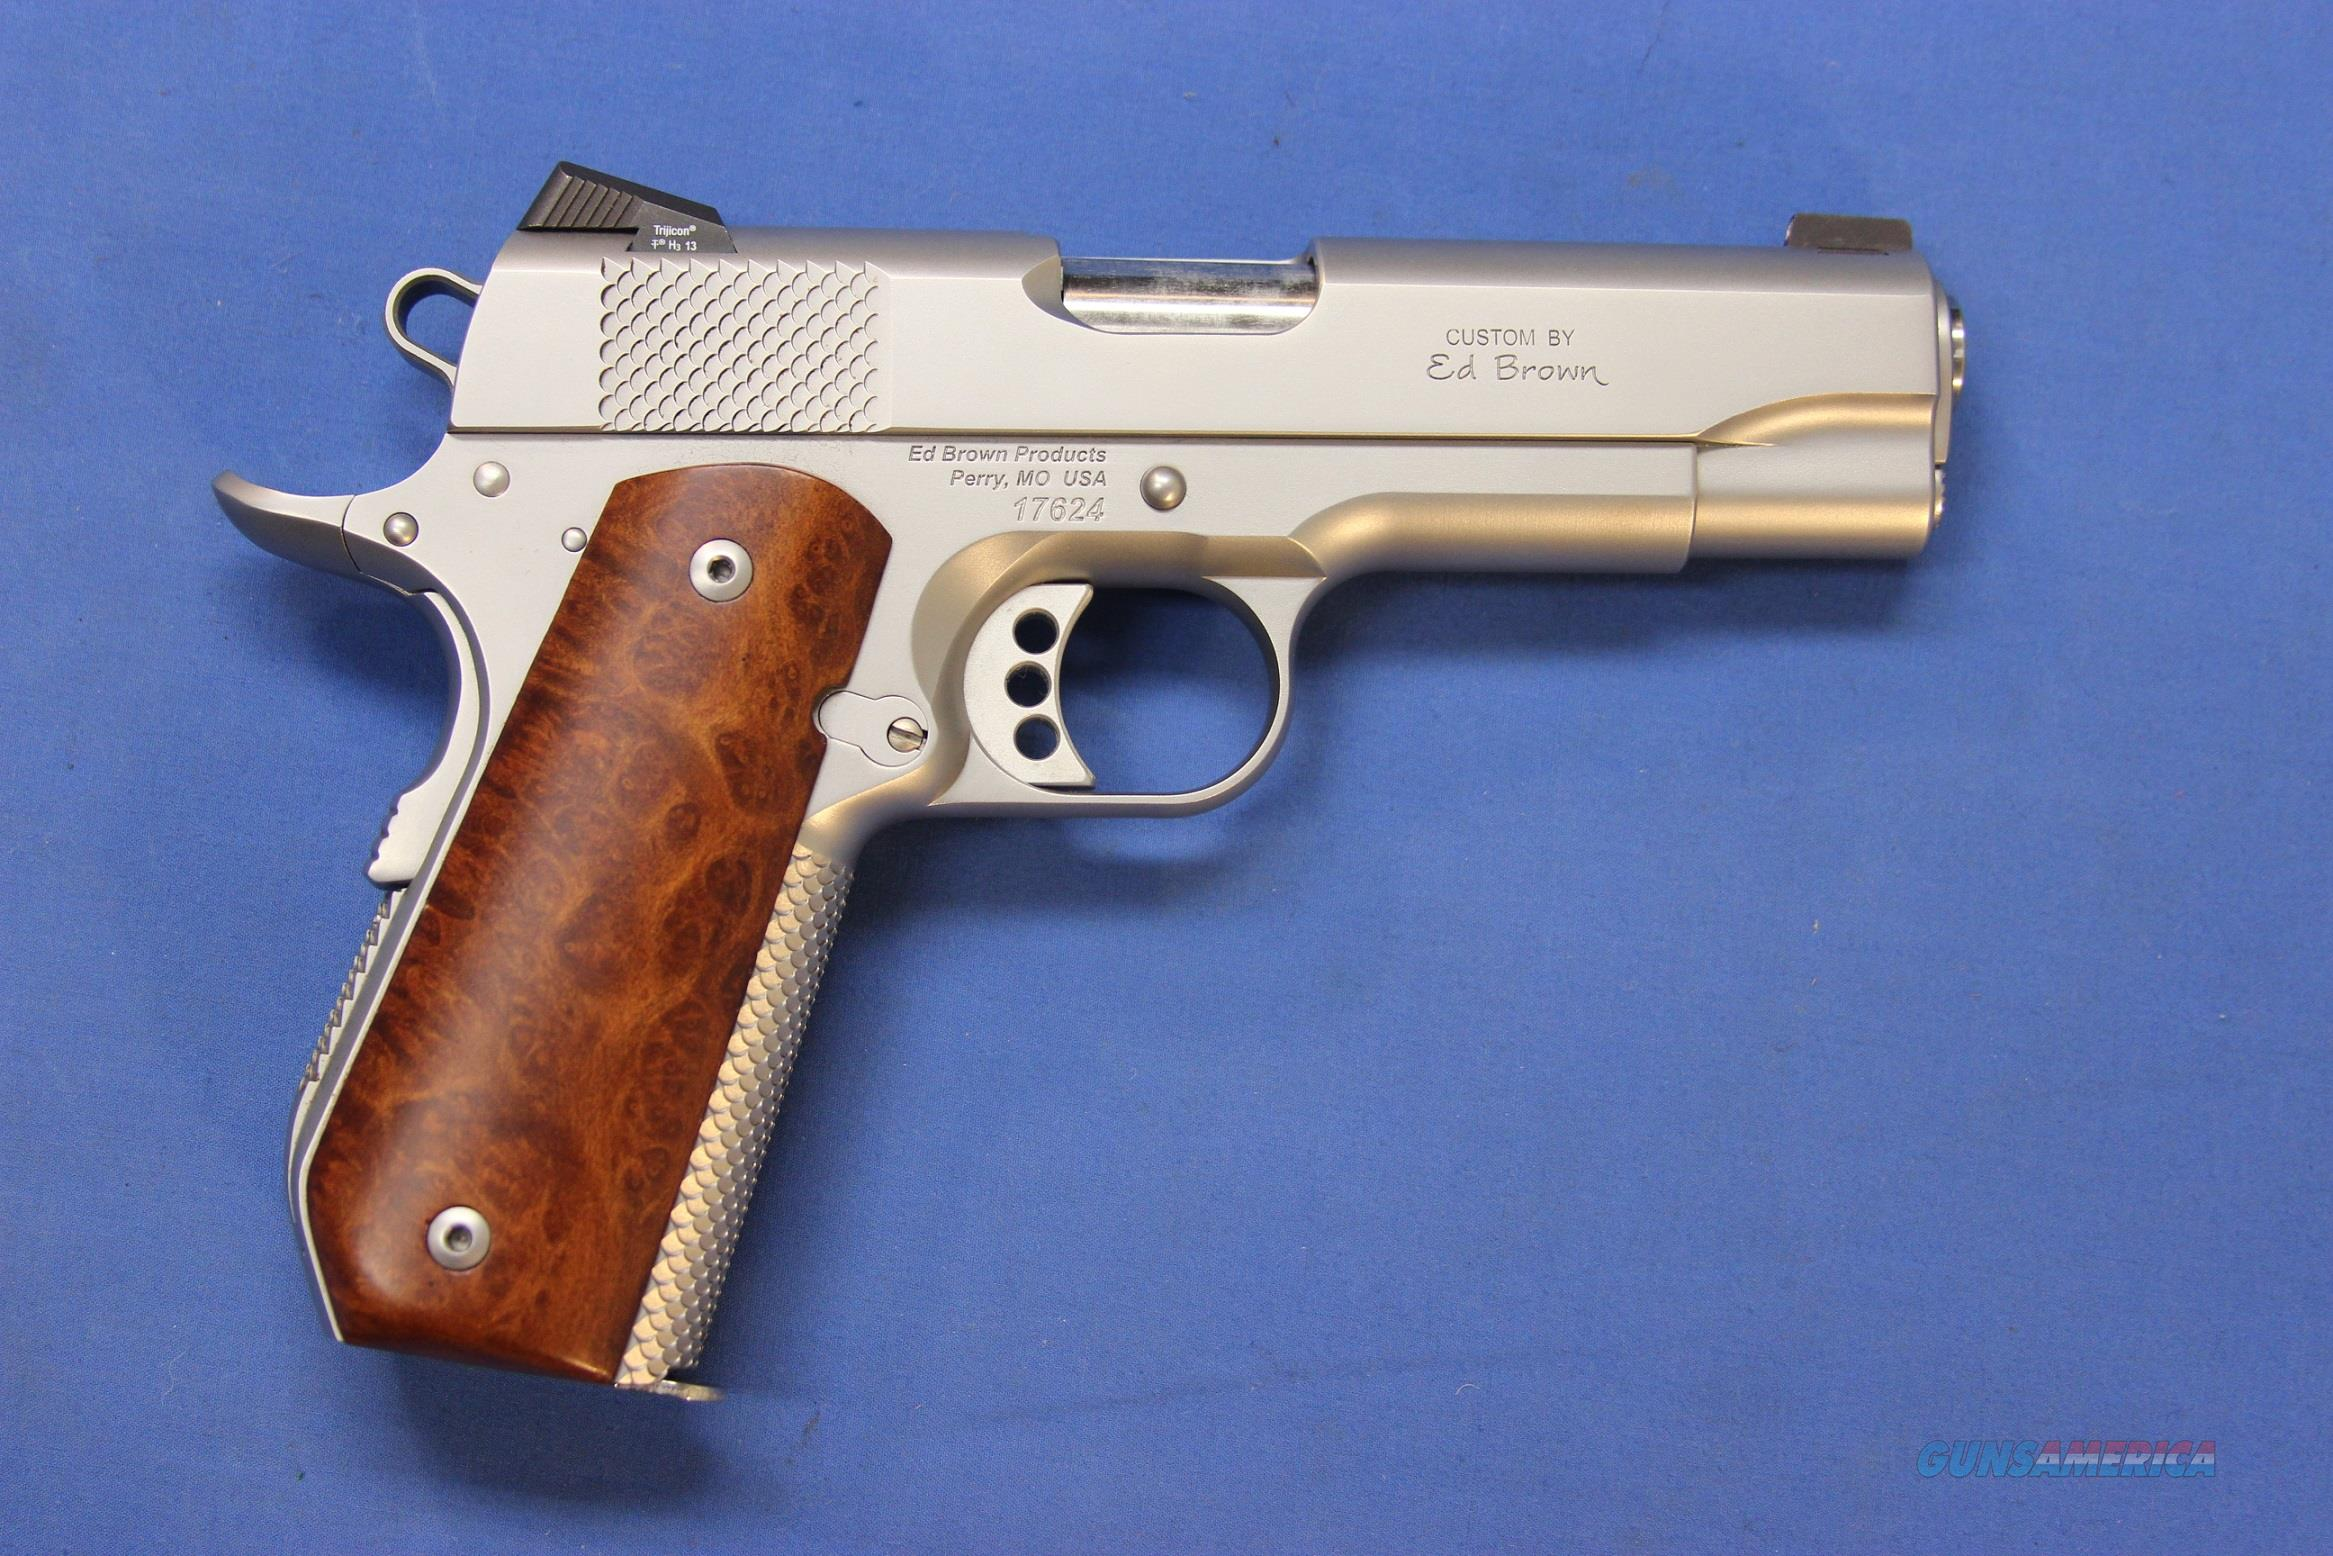 ED BROWN 1911 KOBRA CARRY STAINLESS .45 ACP  Guns > Pistols > Ed Brown Pistols